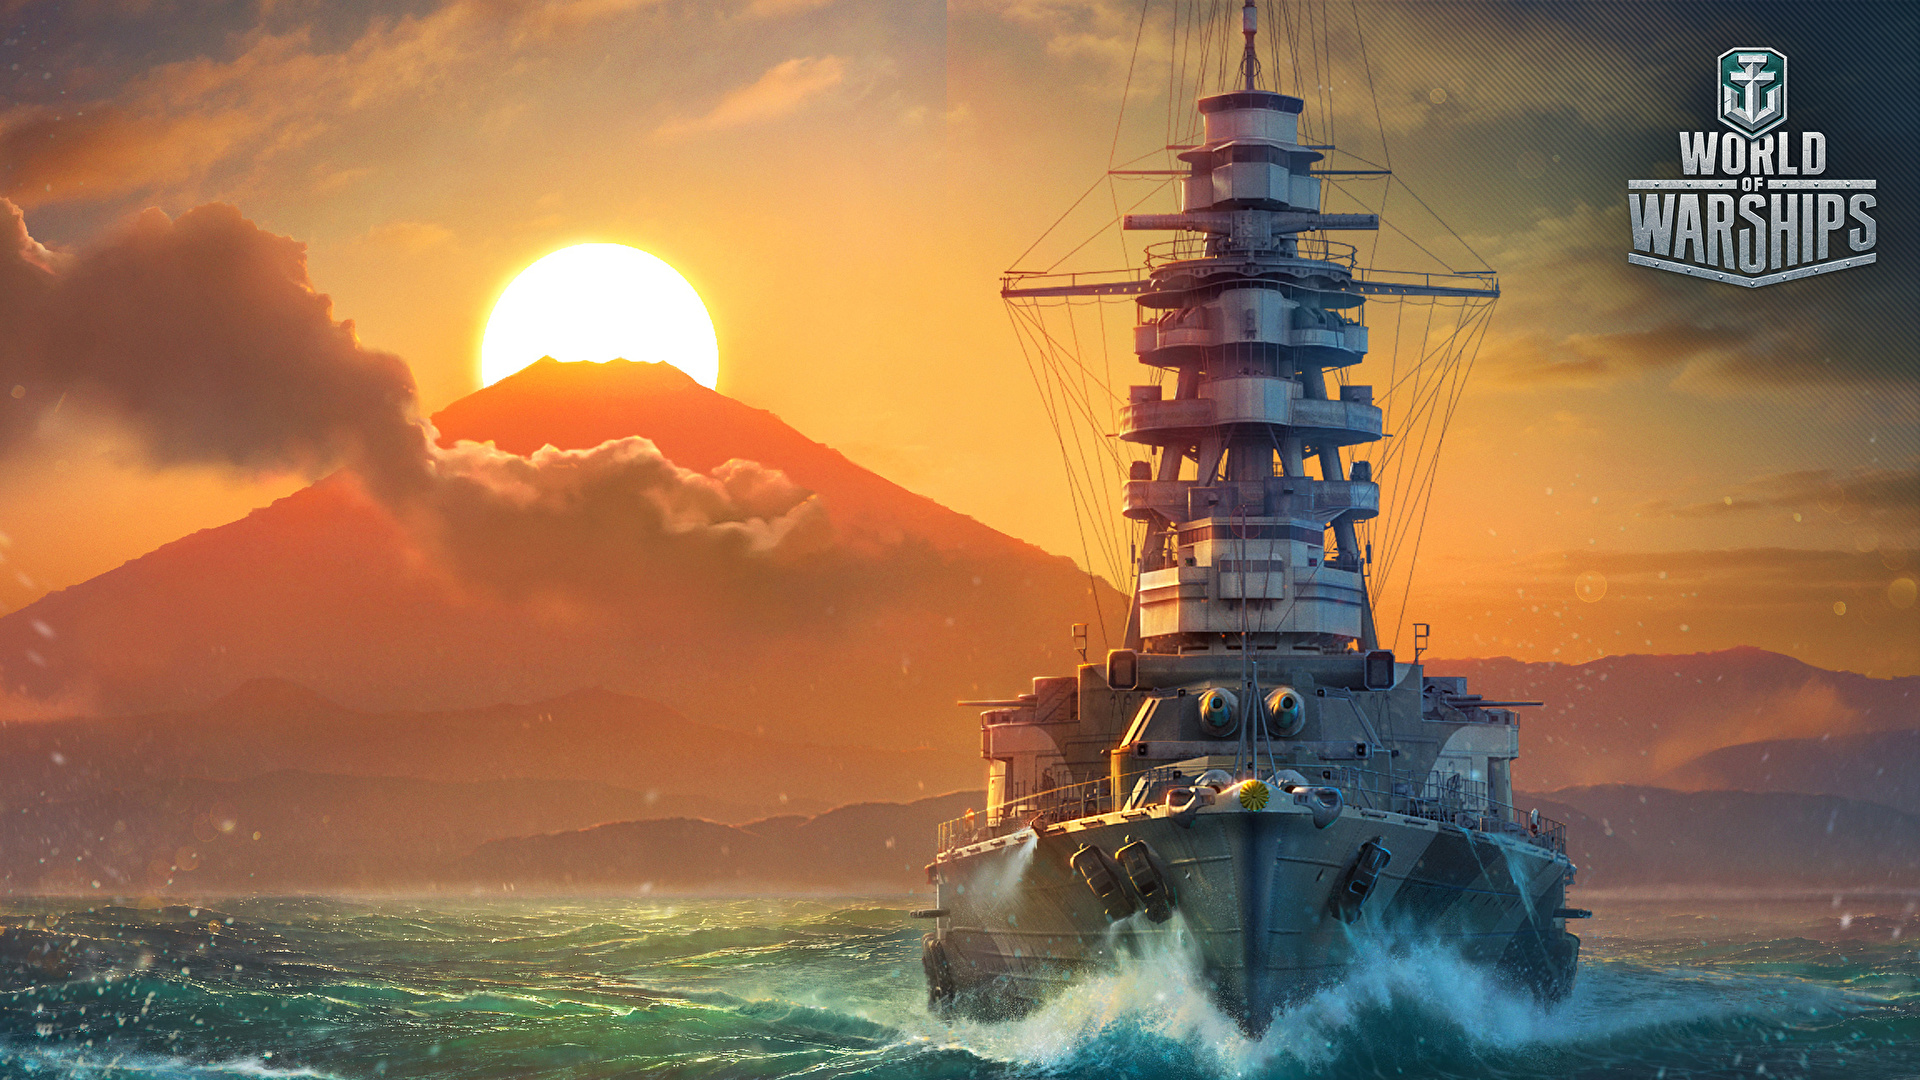 World Of Warships Backgrounds, Pictures, Images